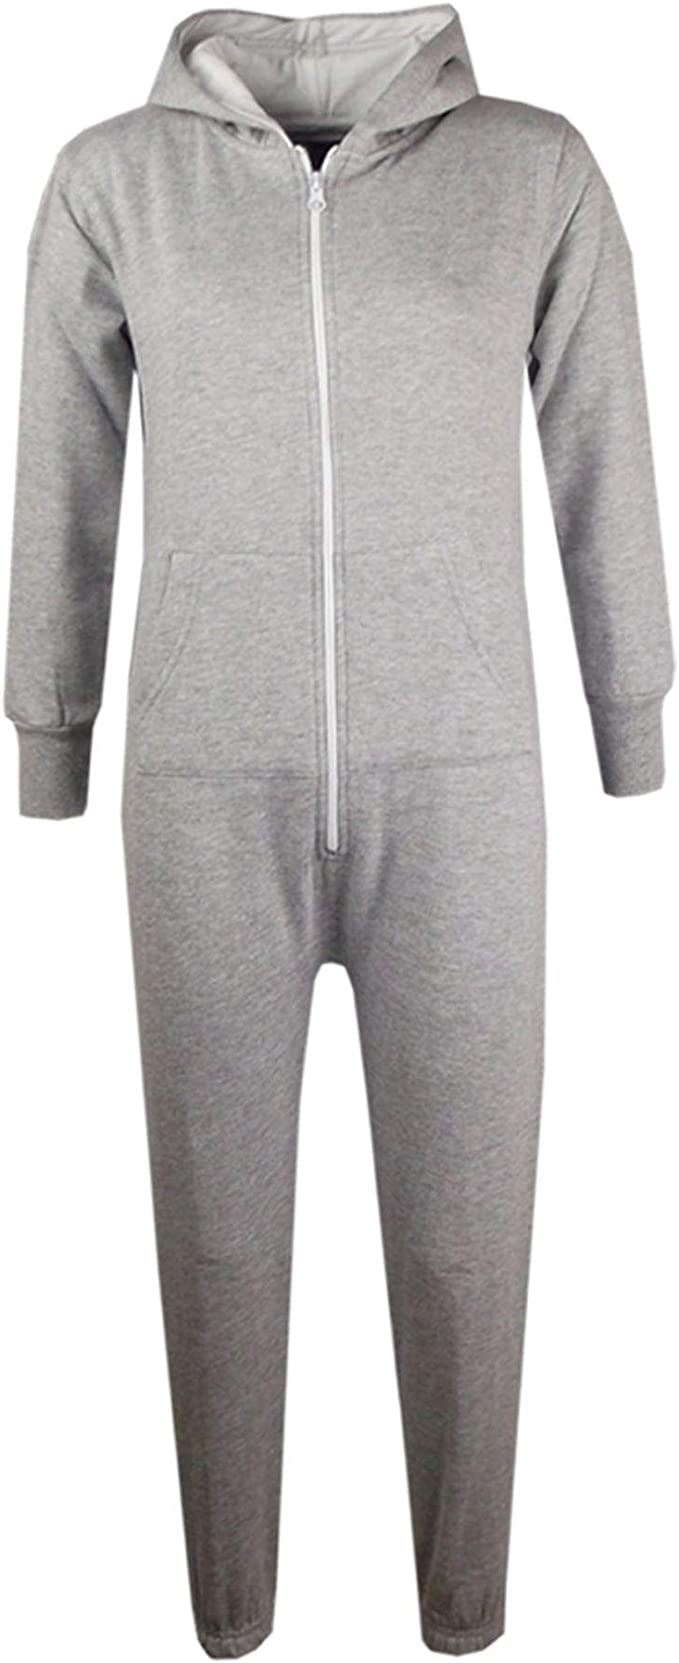 Top Fashion18 Unisex Kids Girls Boys Plain Color Fleece Hooded Onesie All in One Age 7-13